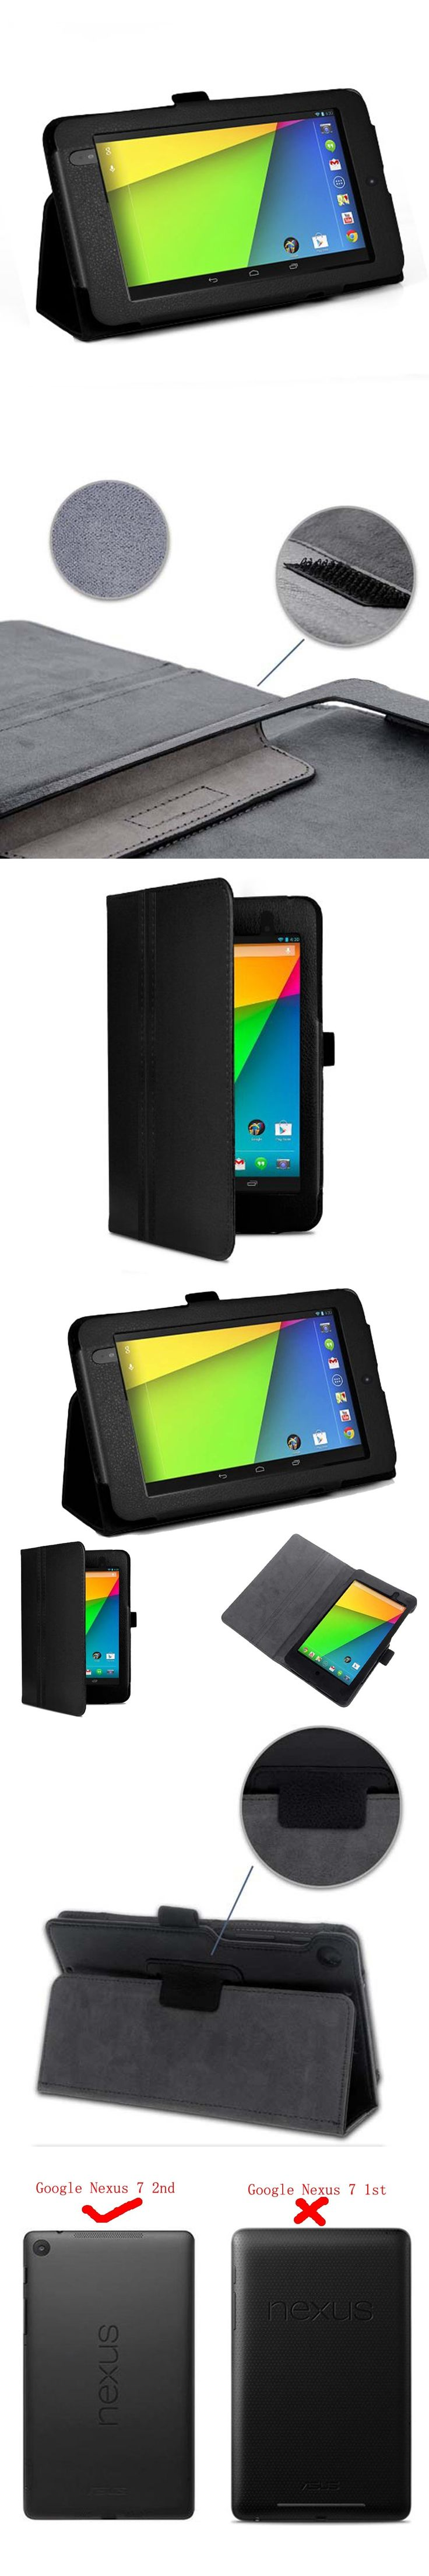 Protect pu Leather Smart Flip folio Cover Case for Google Nexus 7 2nd 2013 model with